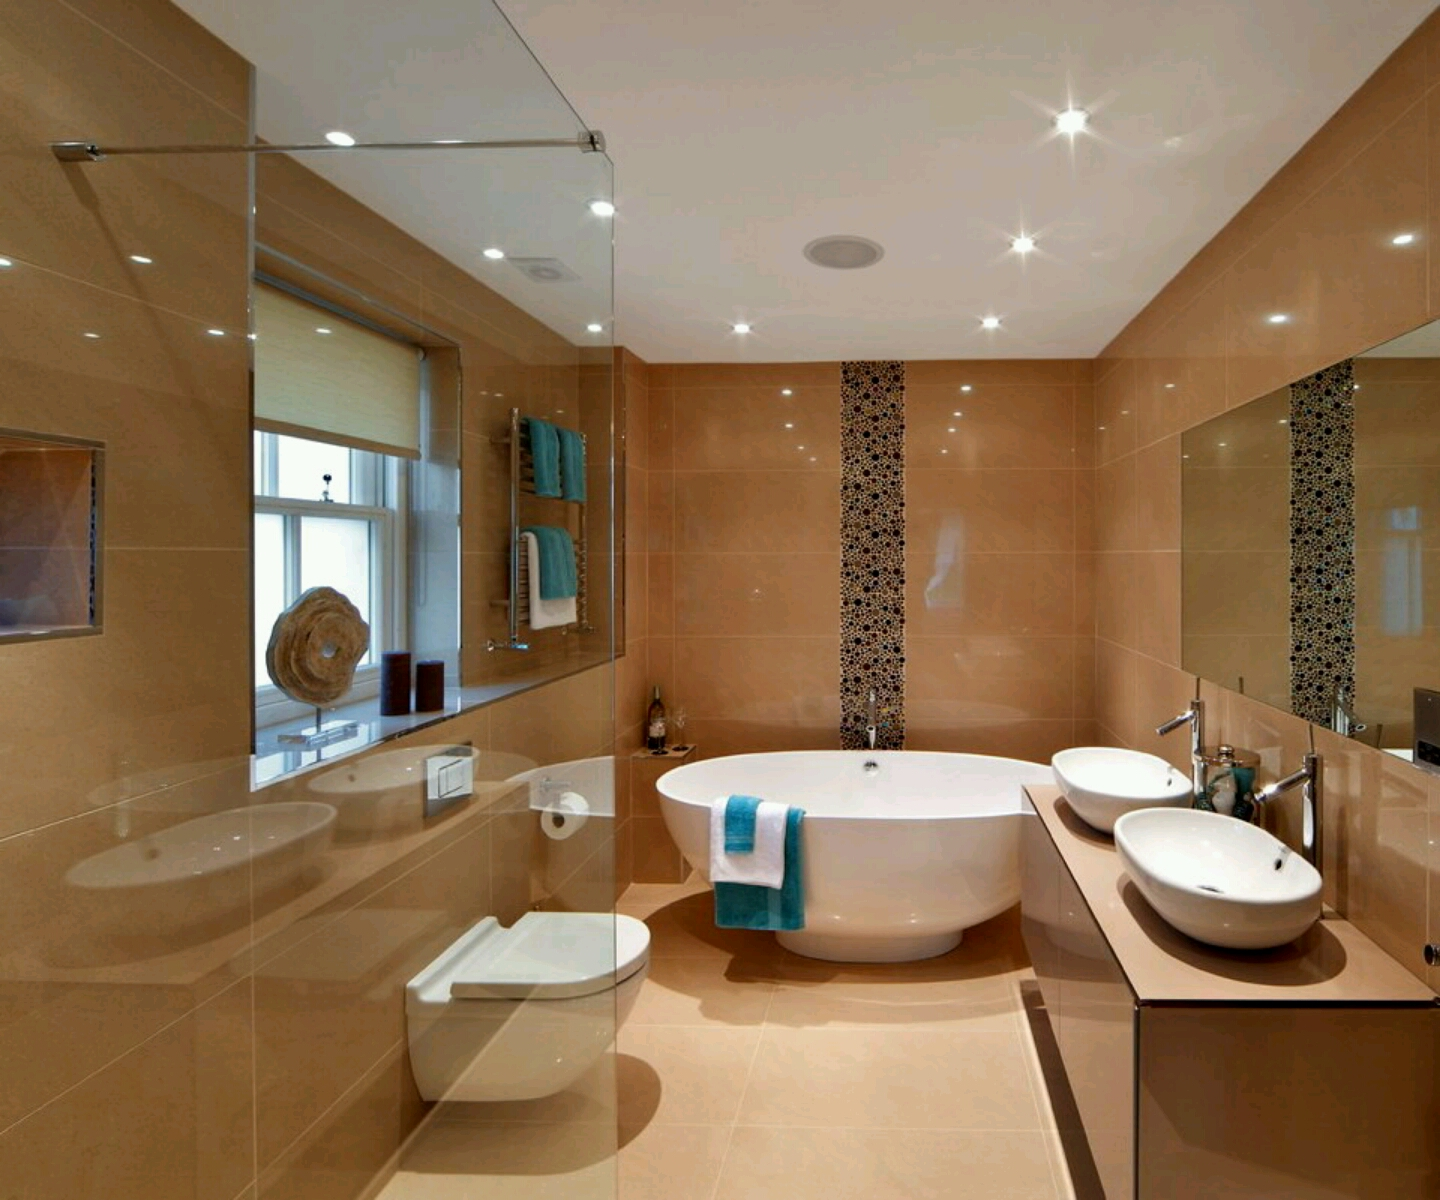 New home designs latest luxury modern bathrooms designs for Bathroom design 2014